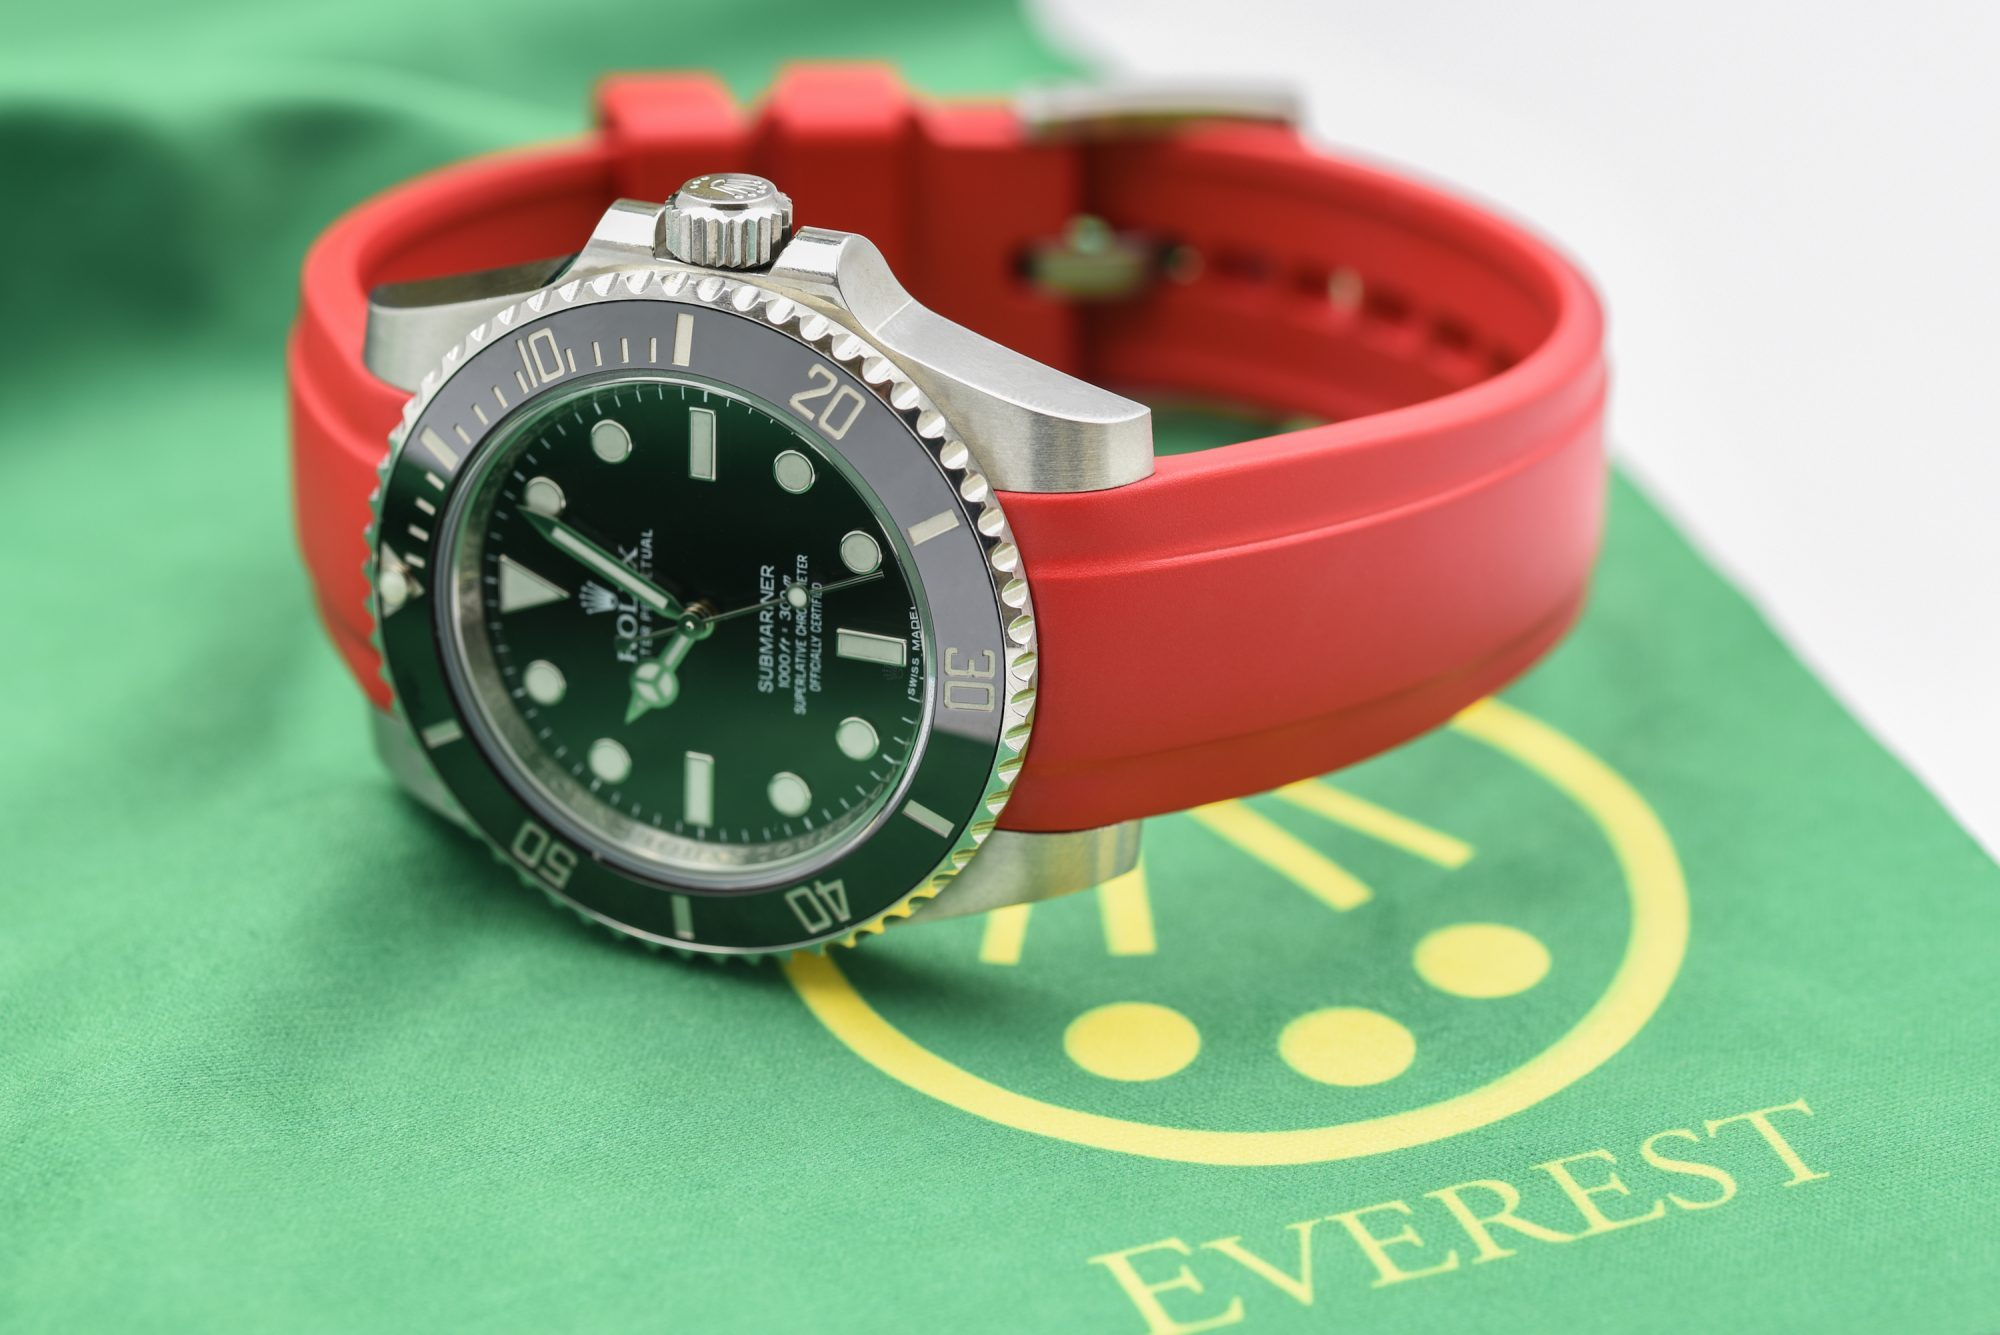 Everest bands official retailer Europe